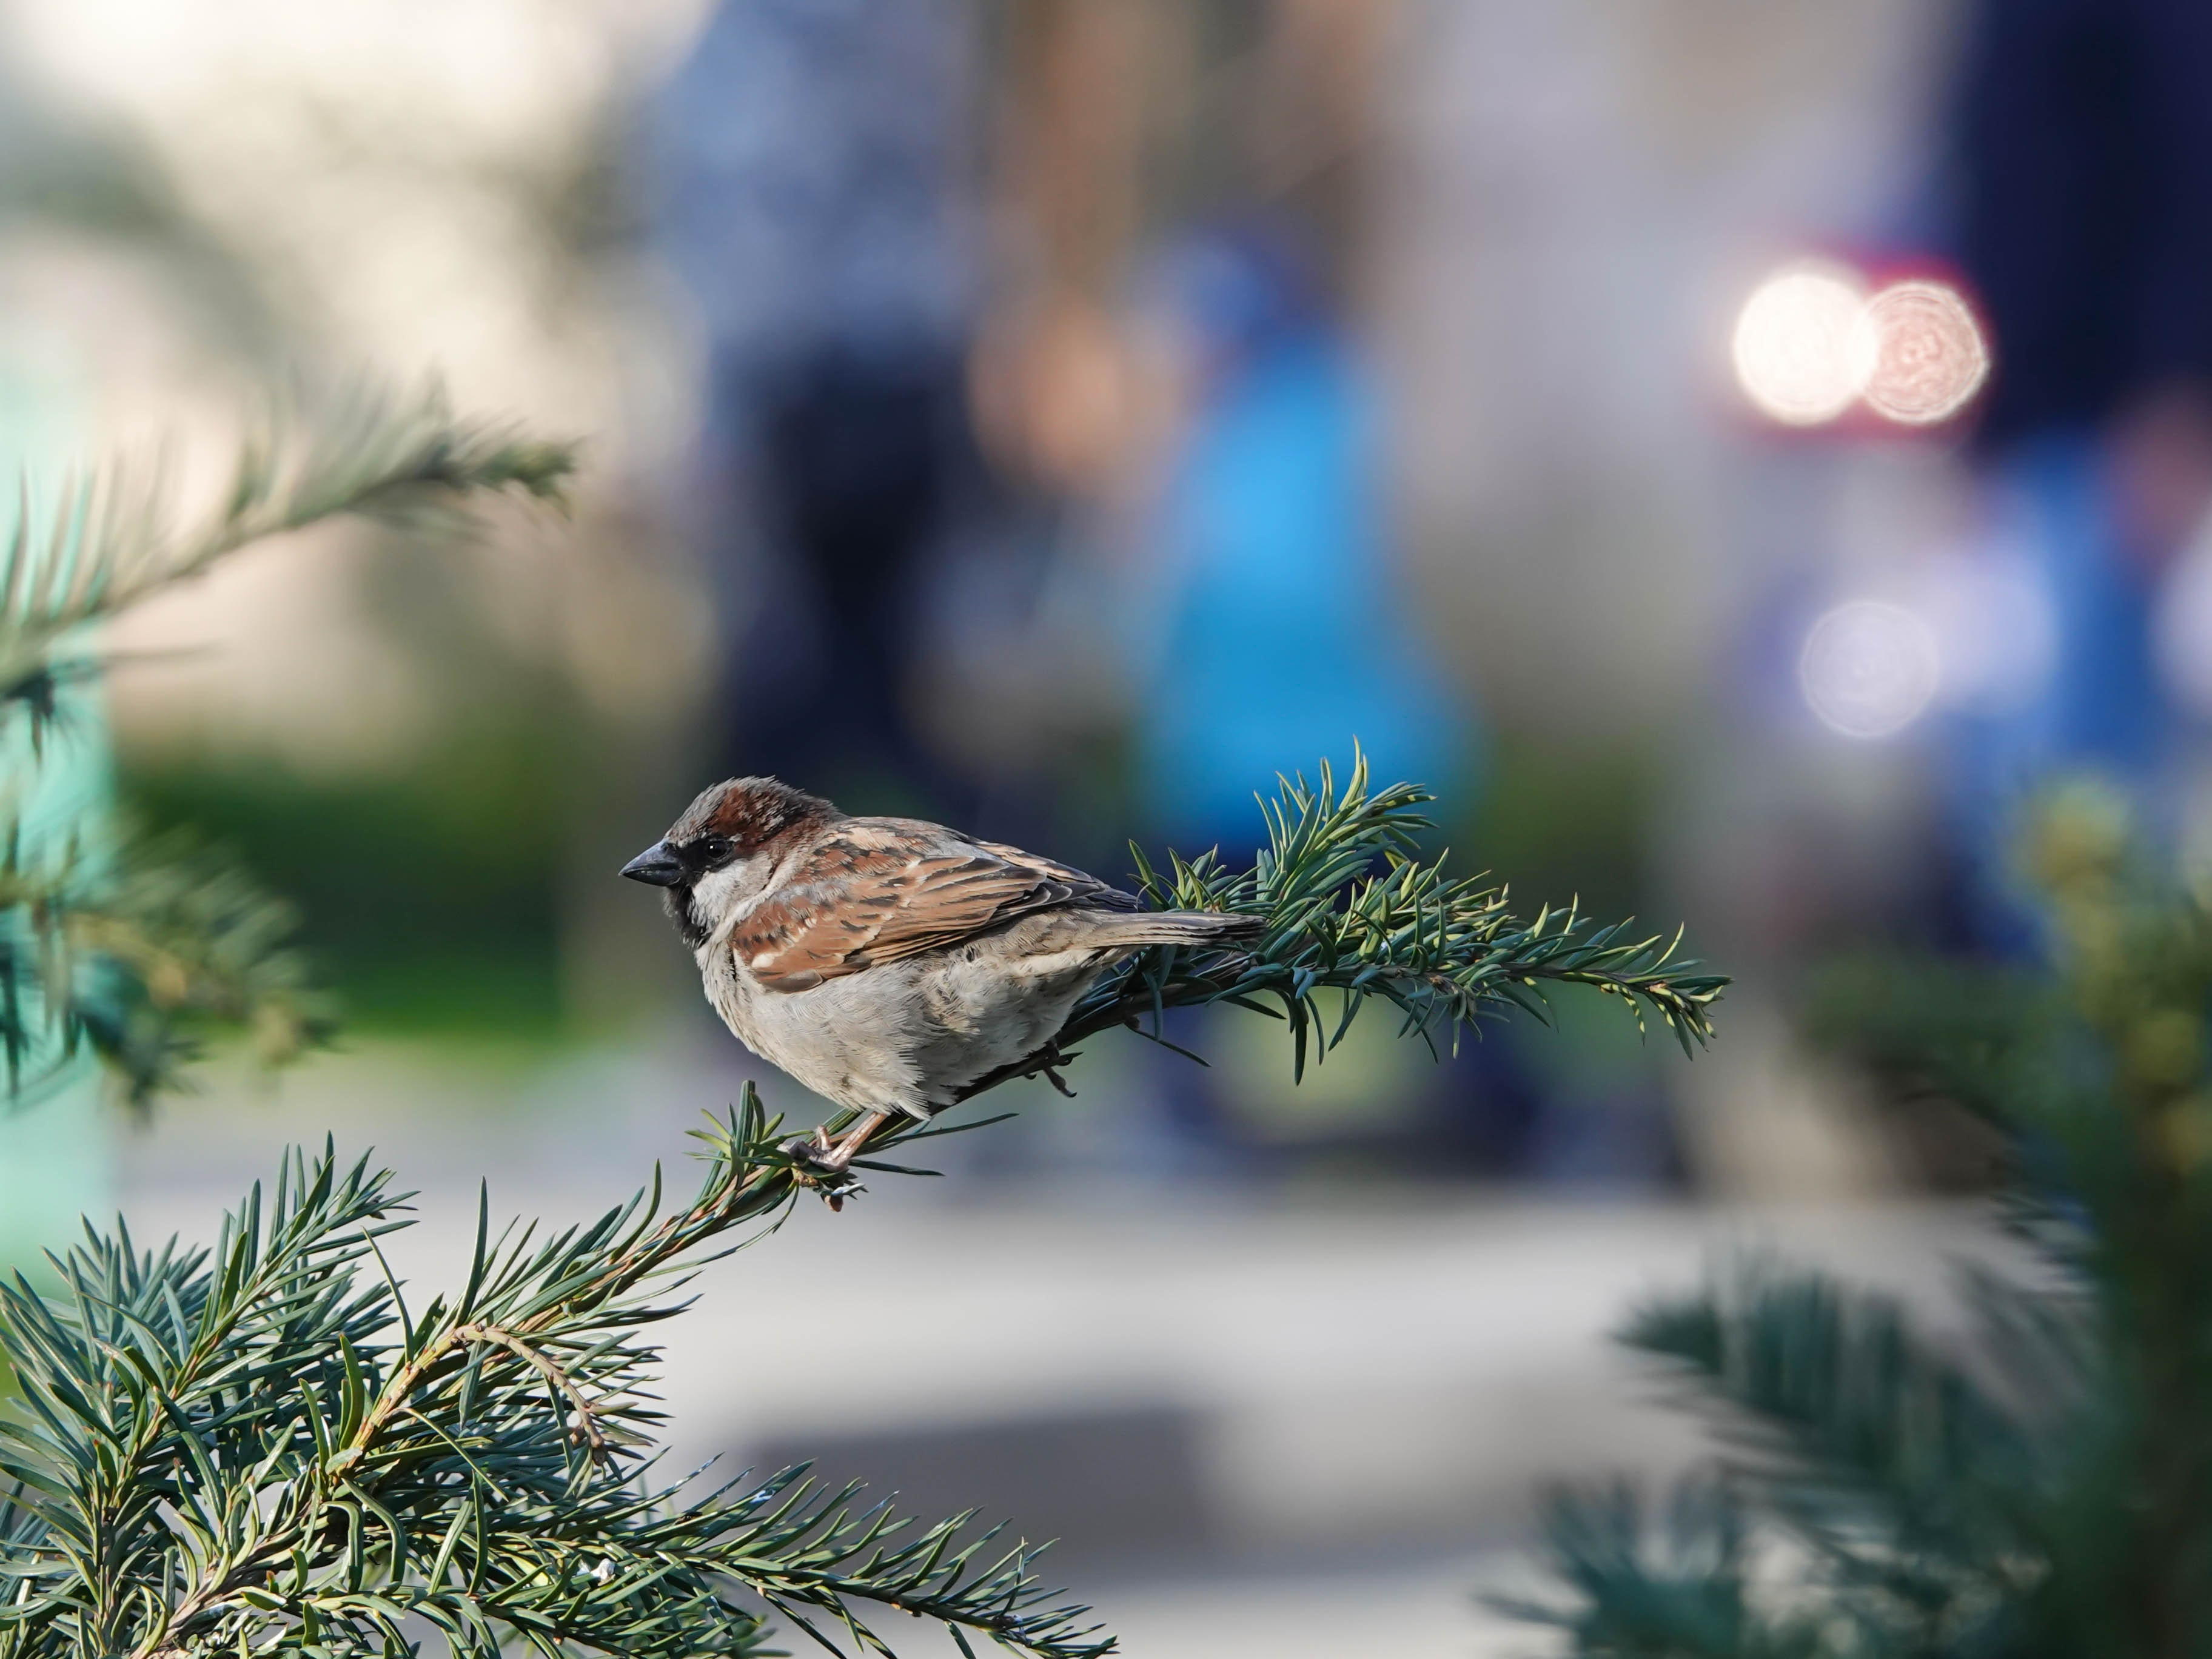 brown sparrow on tree branch